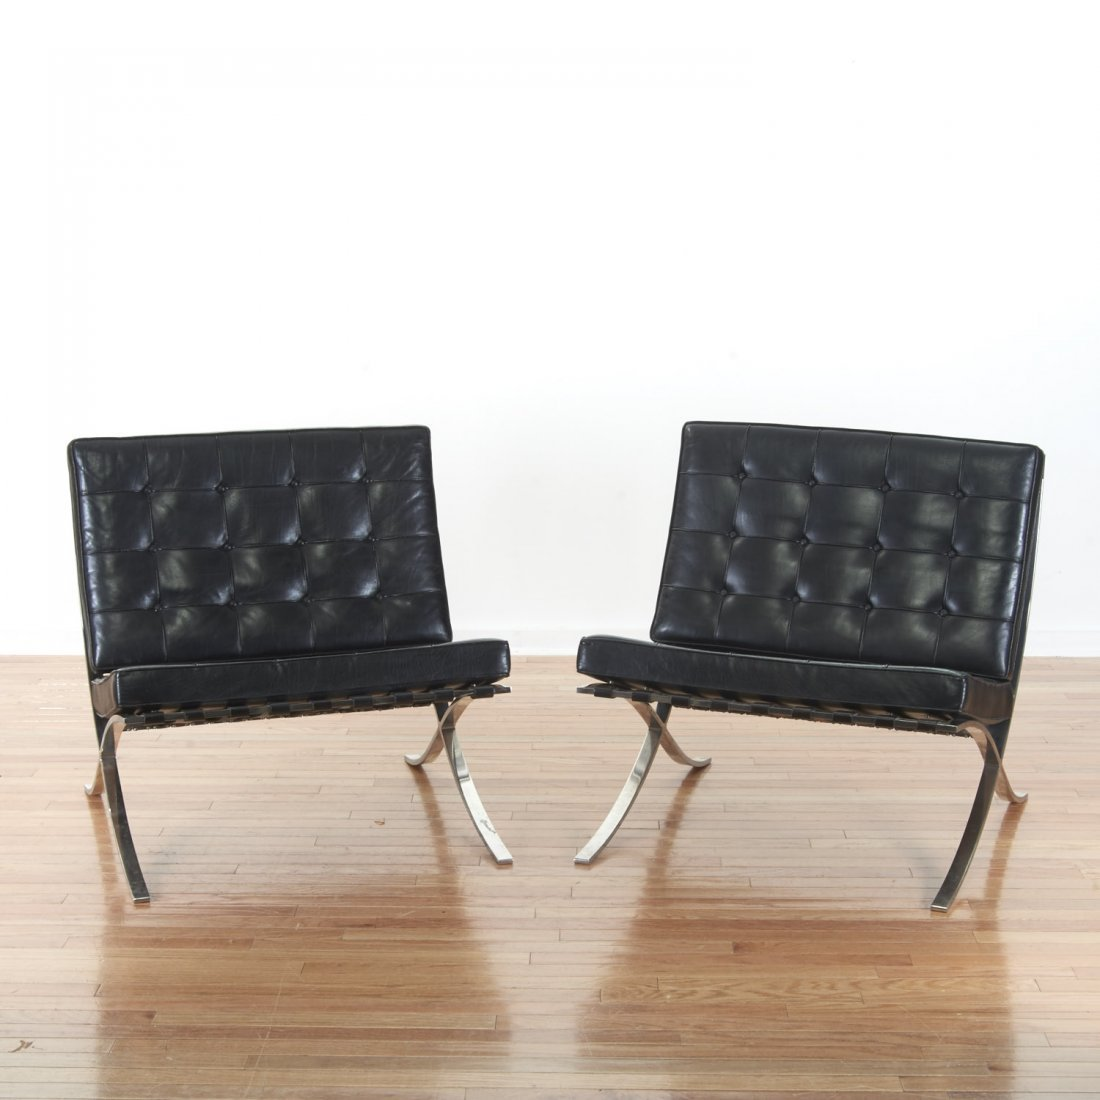 Pair Mies Van der Rohe Barcelona chairs